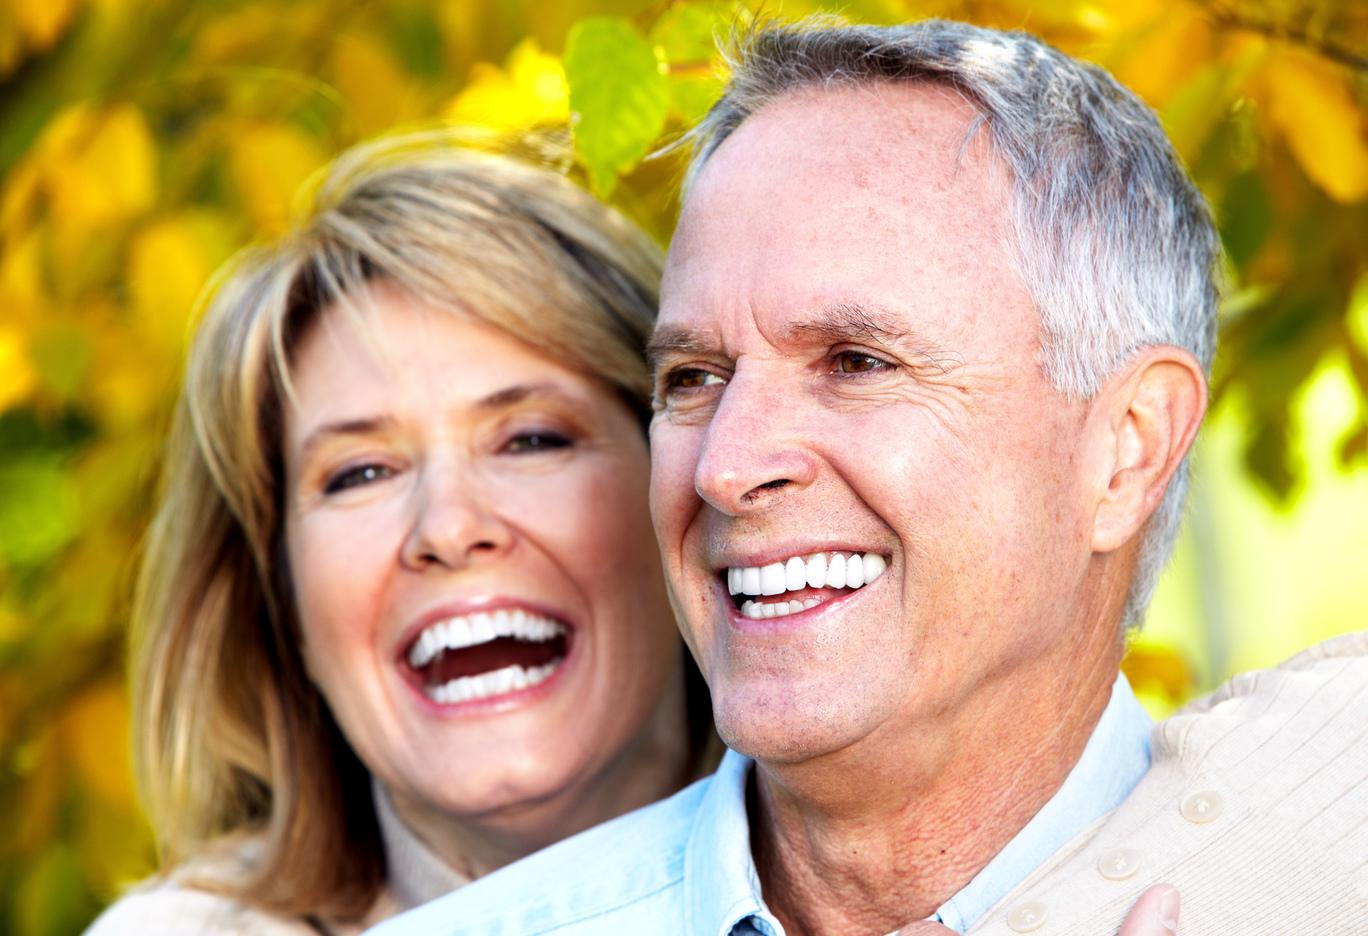 dentures monroe township nj